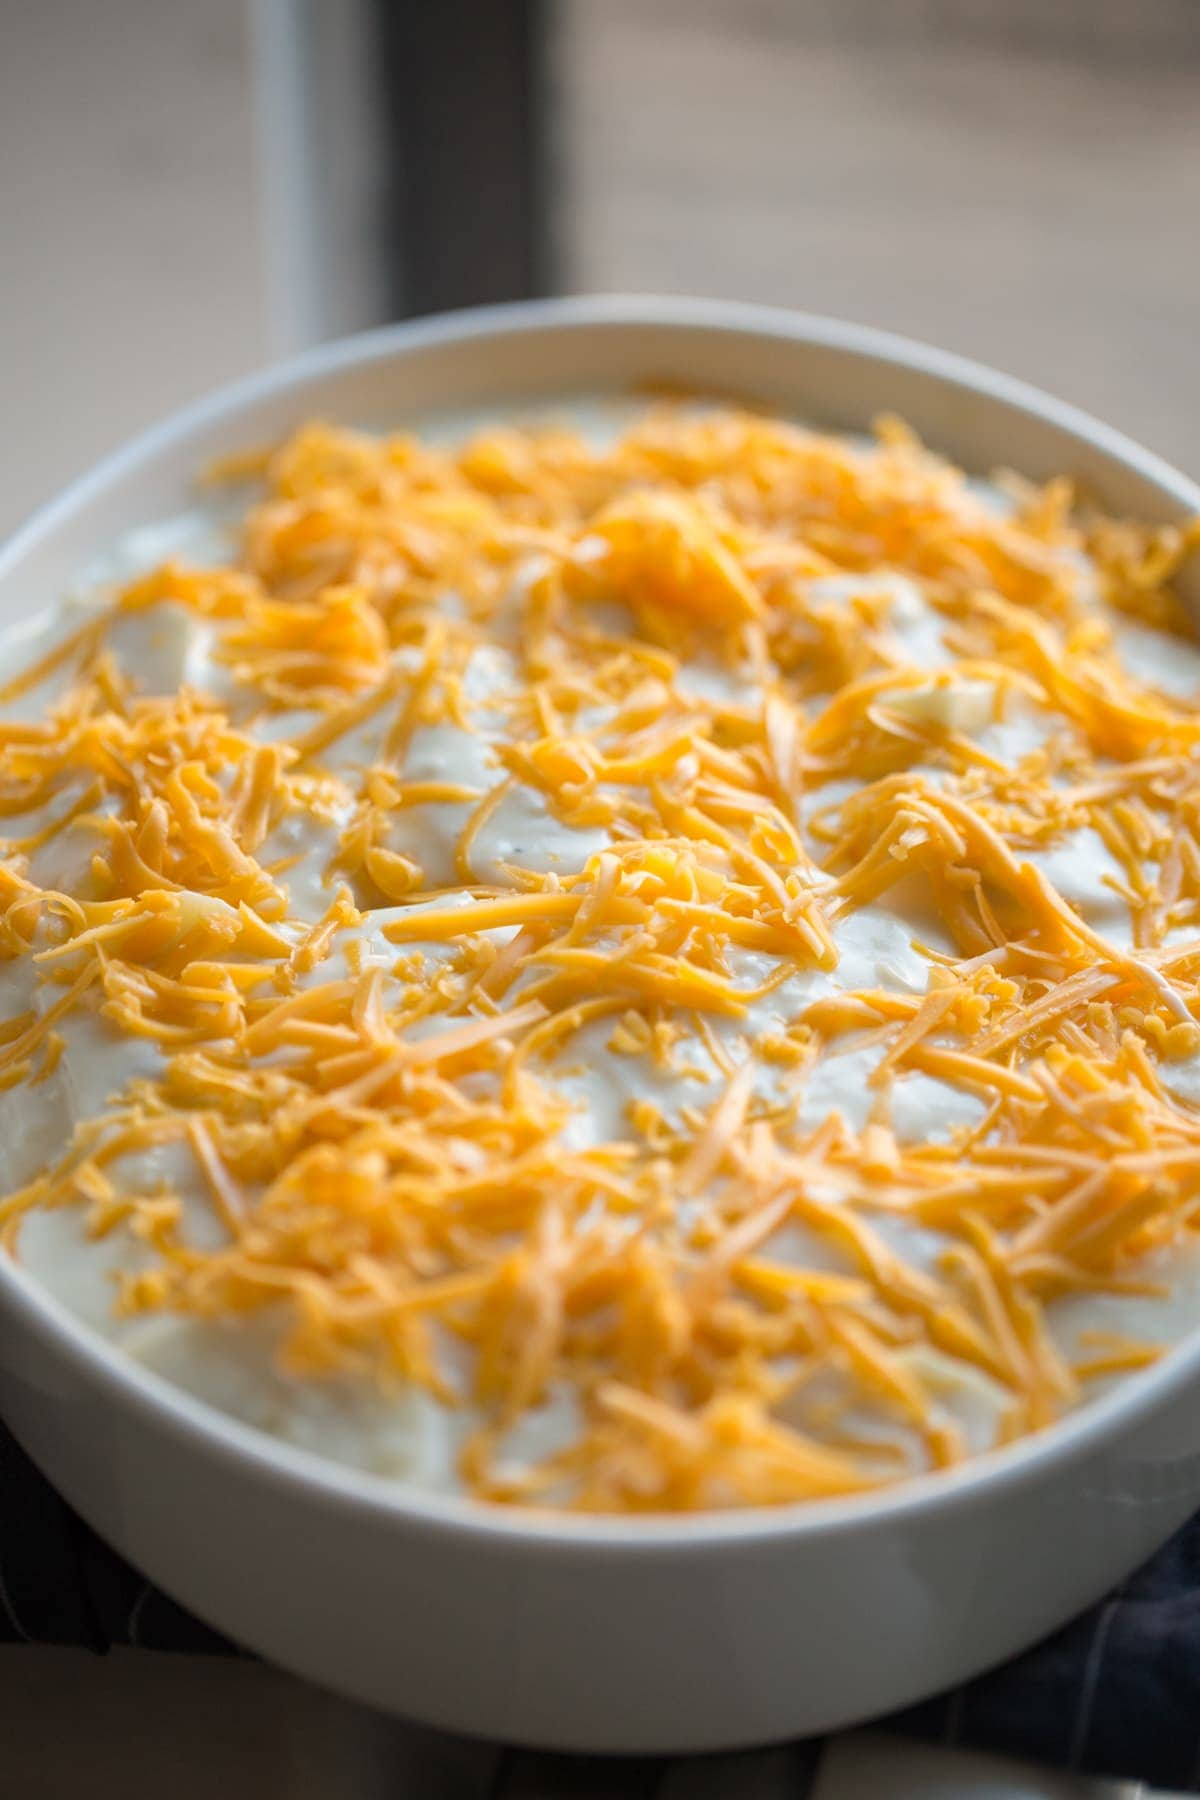 Top with Cheese